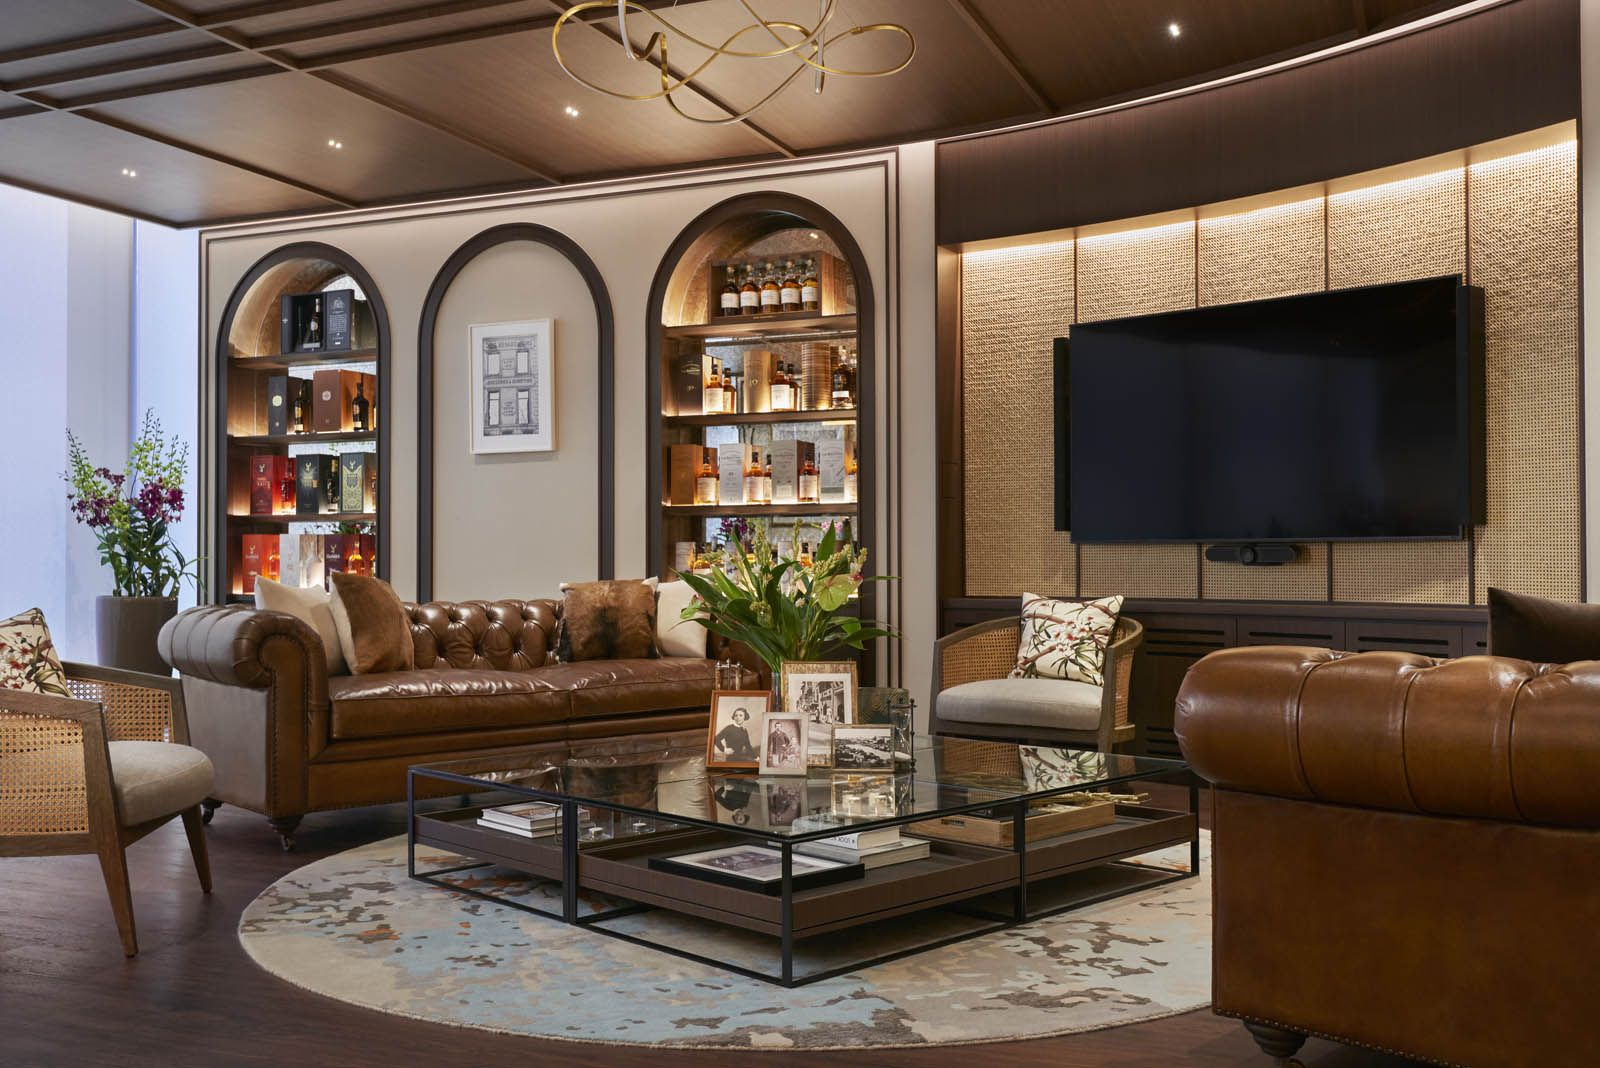 William Grant & Sons Opens World's First Distillers Library in Singapore